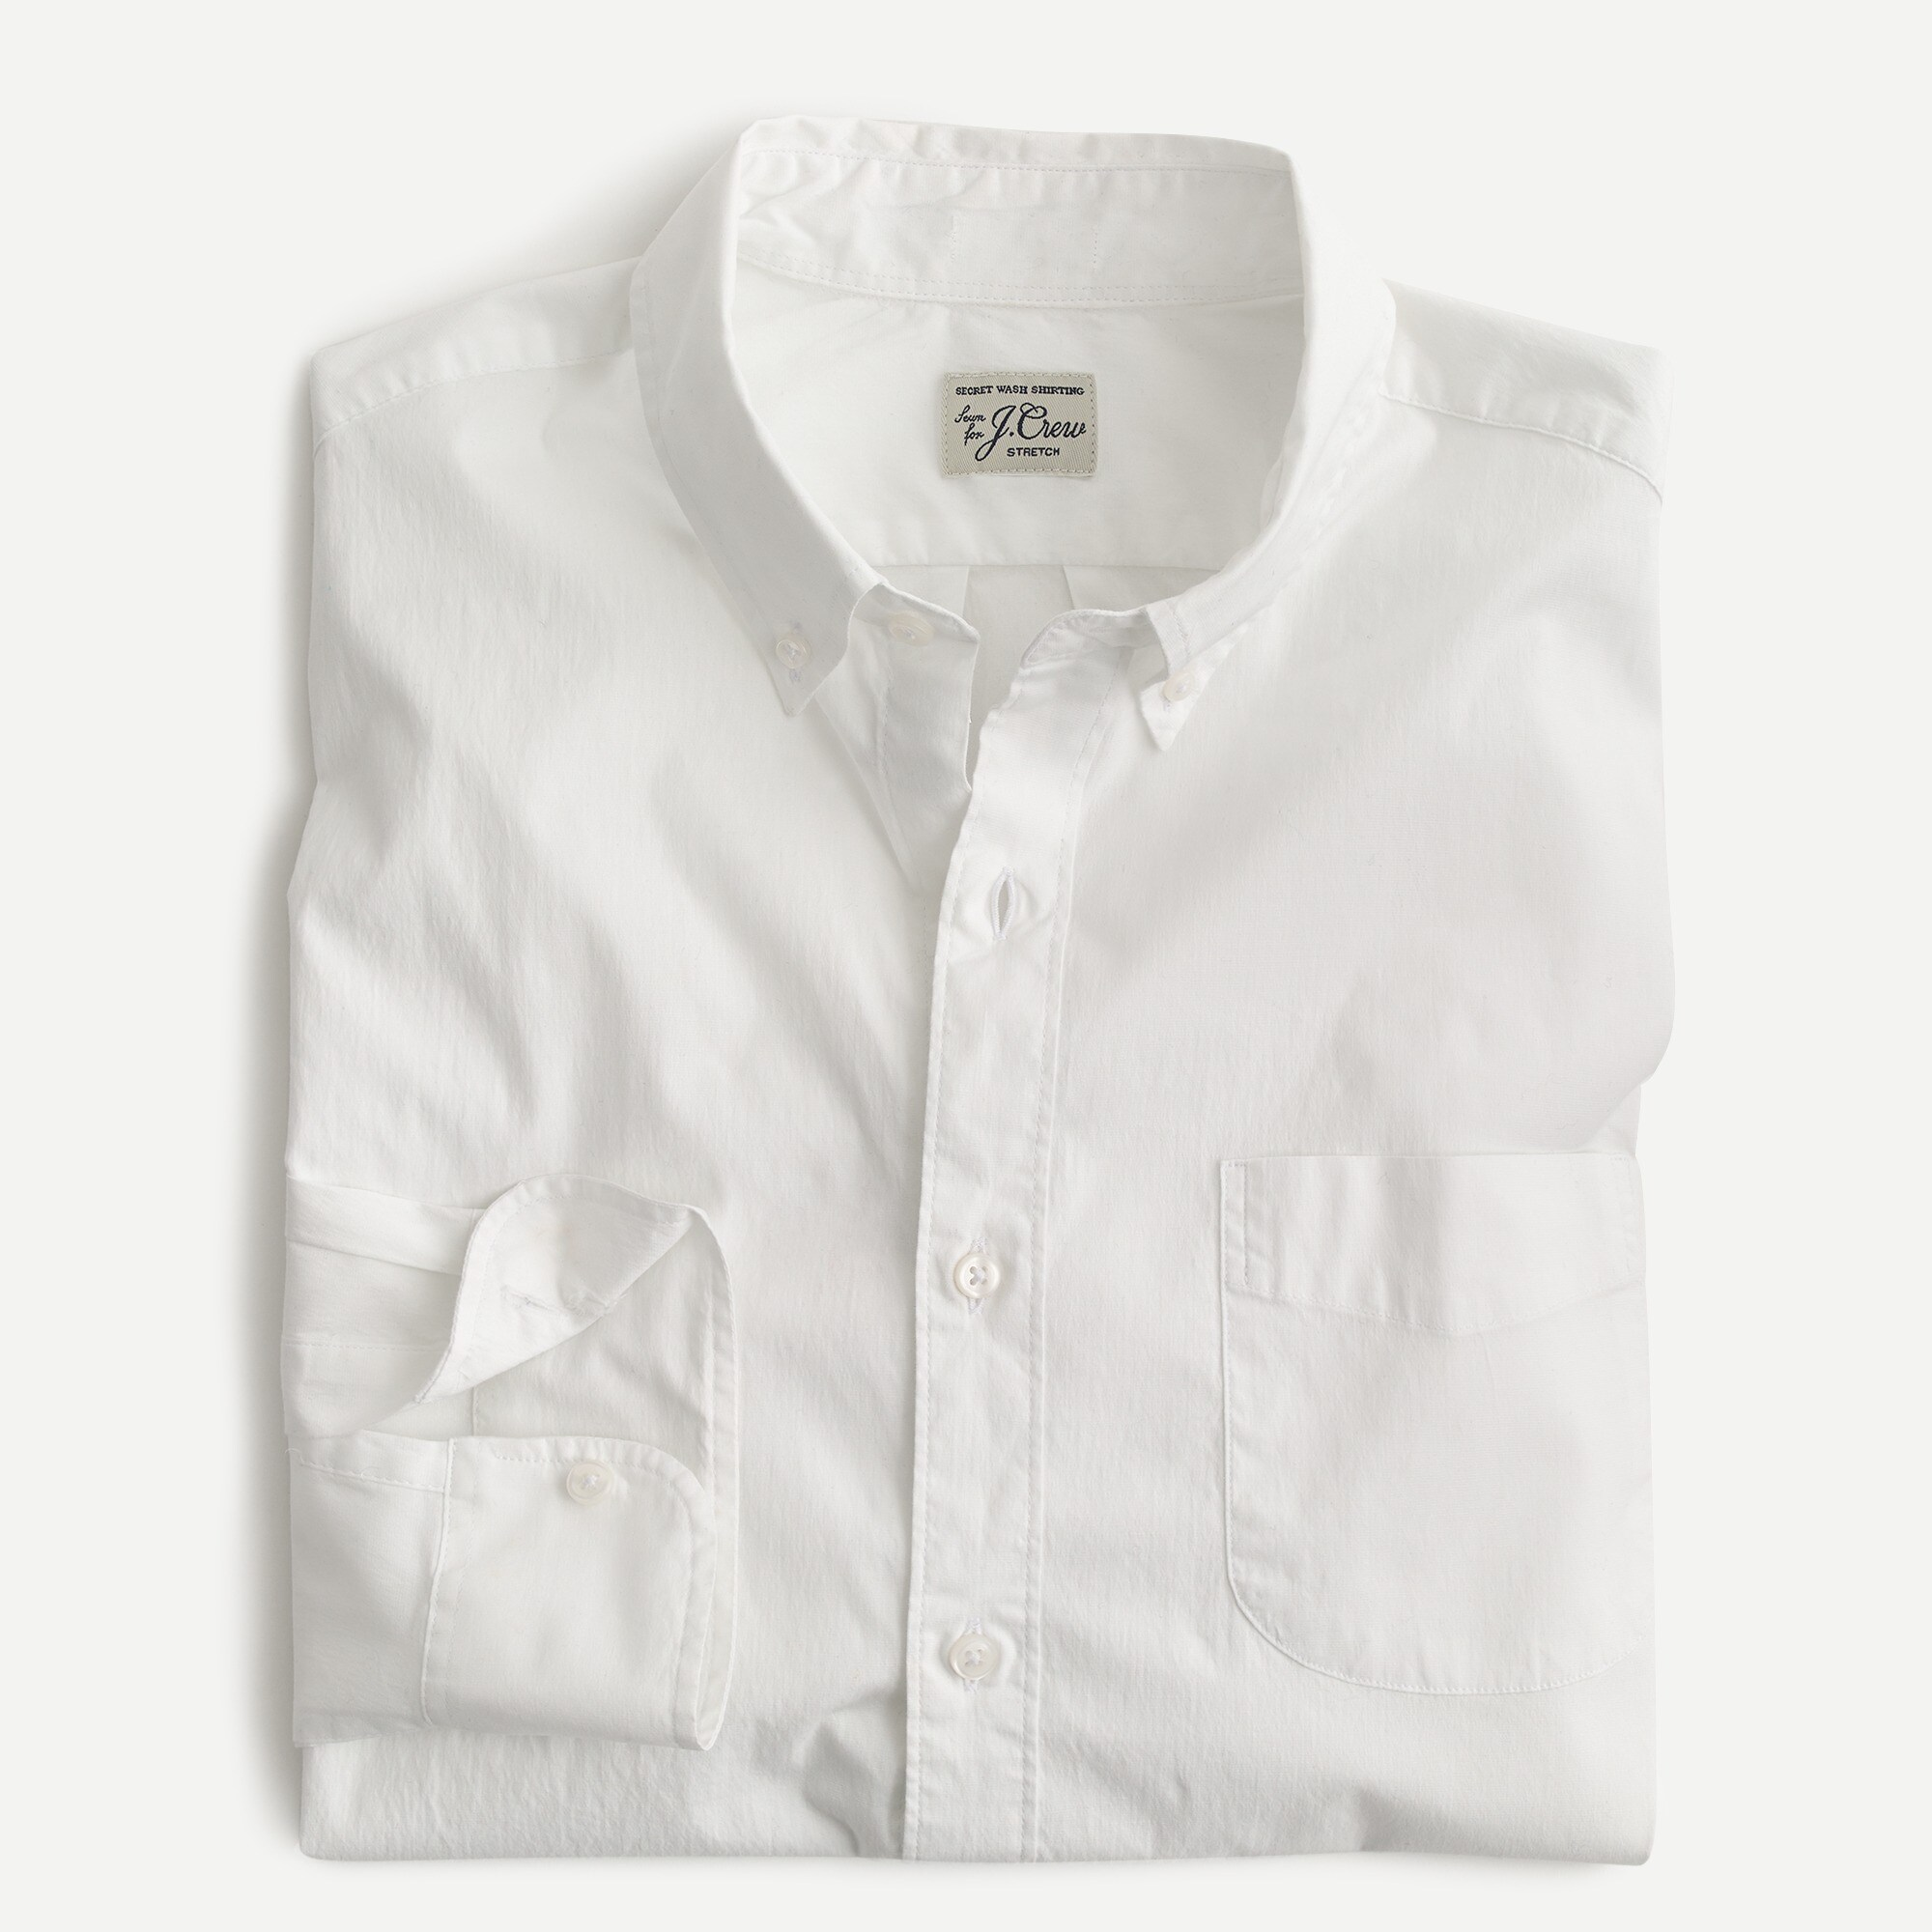 Stretch Secret Wash shirt in white poplin